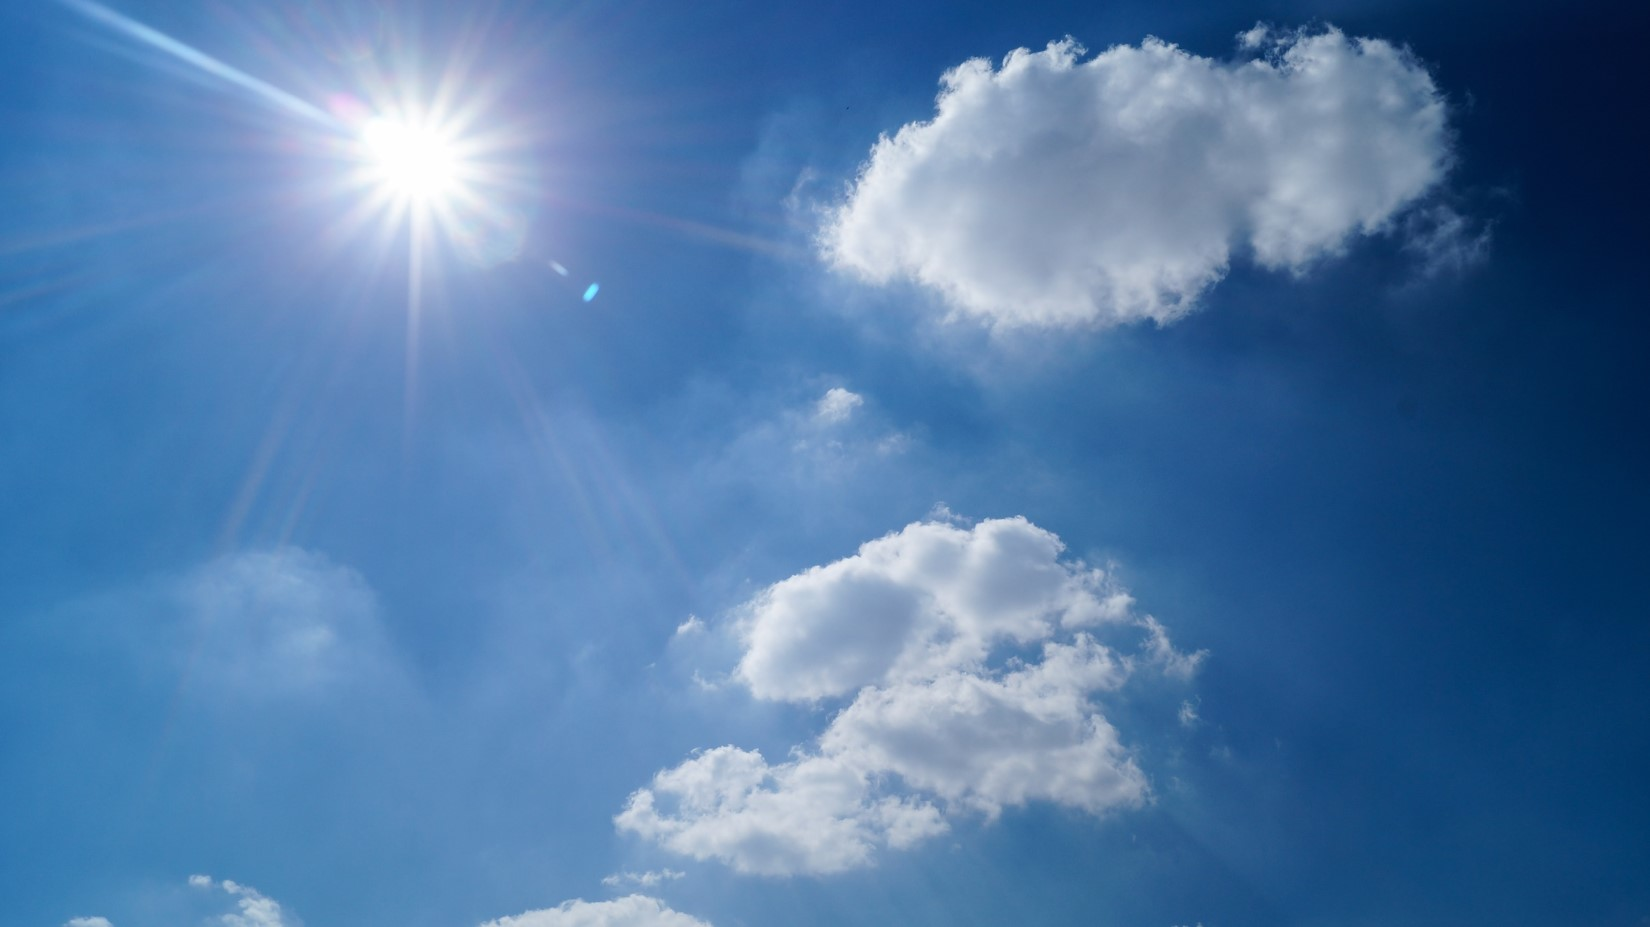 sky-sunny-clouds-cloudy compressed.jpg